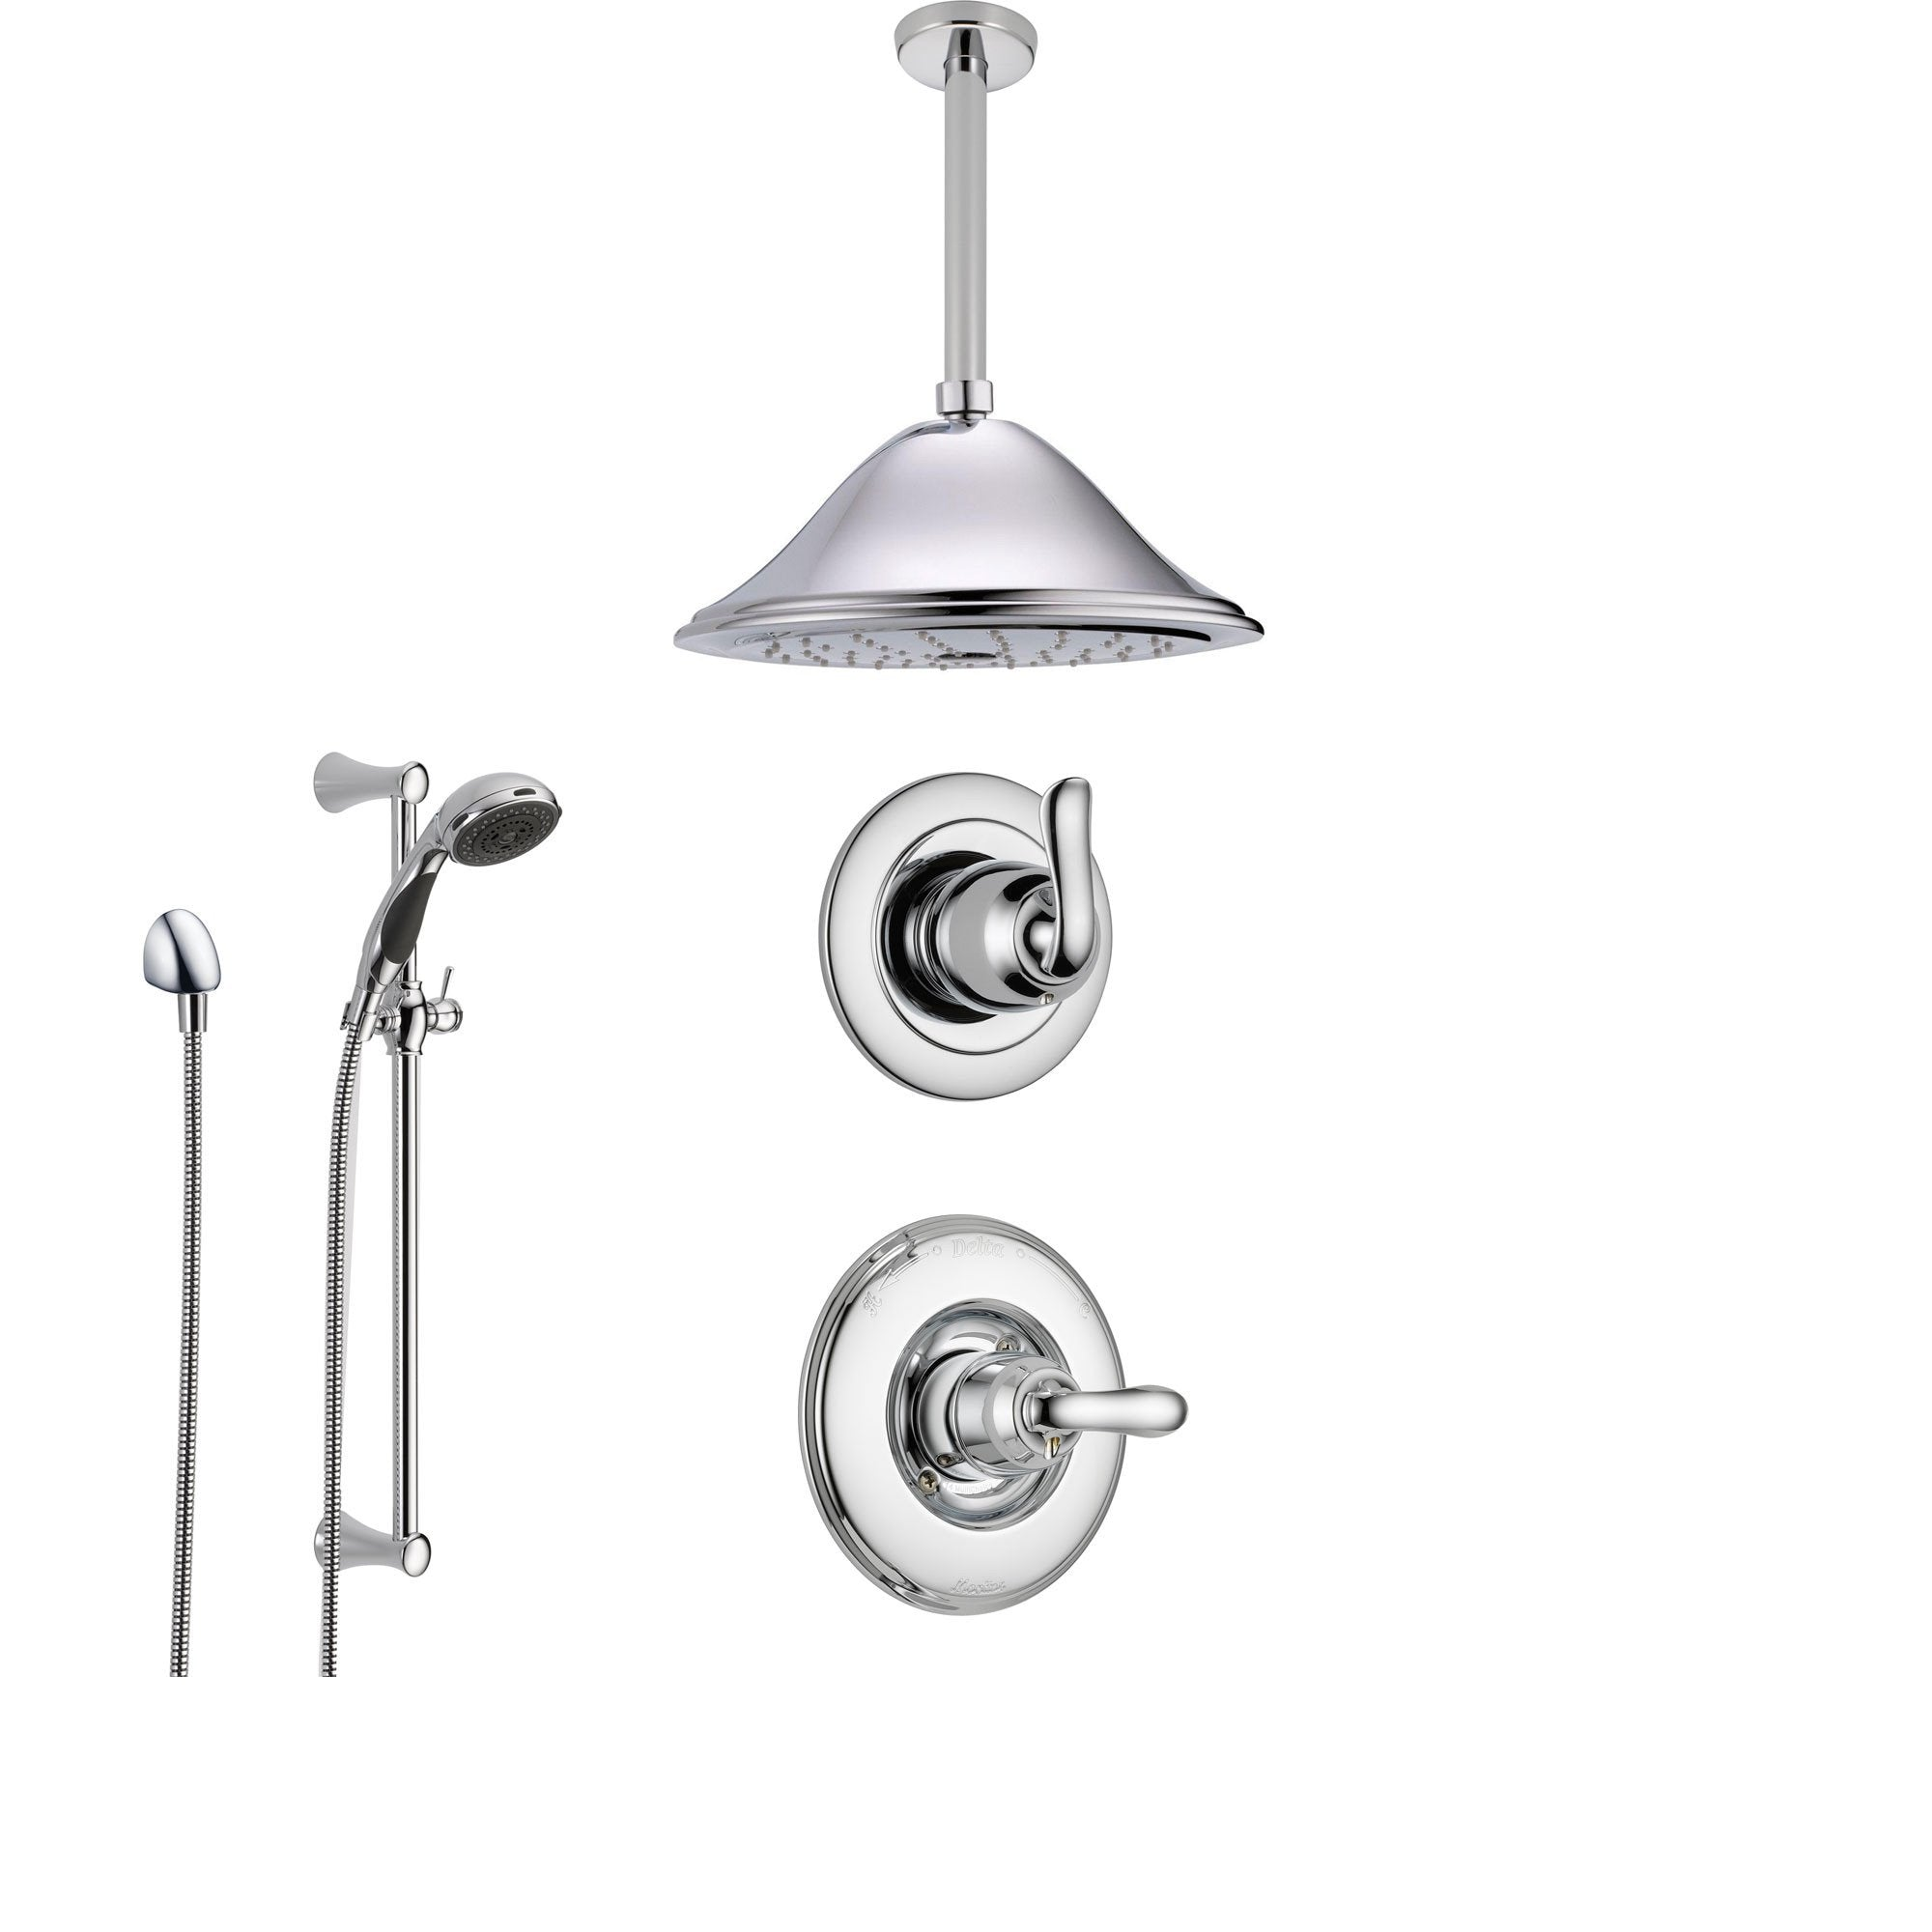 Delta Linden Chrome Shower System with Normal Shower Handle, 3-setting Diverter, Large Ceiling Mount Rain Showerhead, and Handheld Shower SS149482